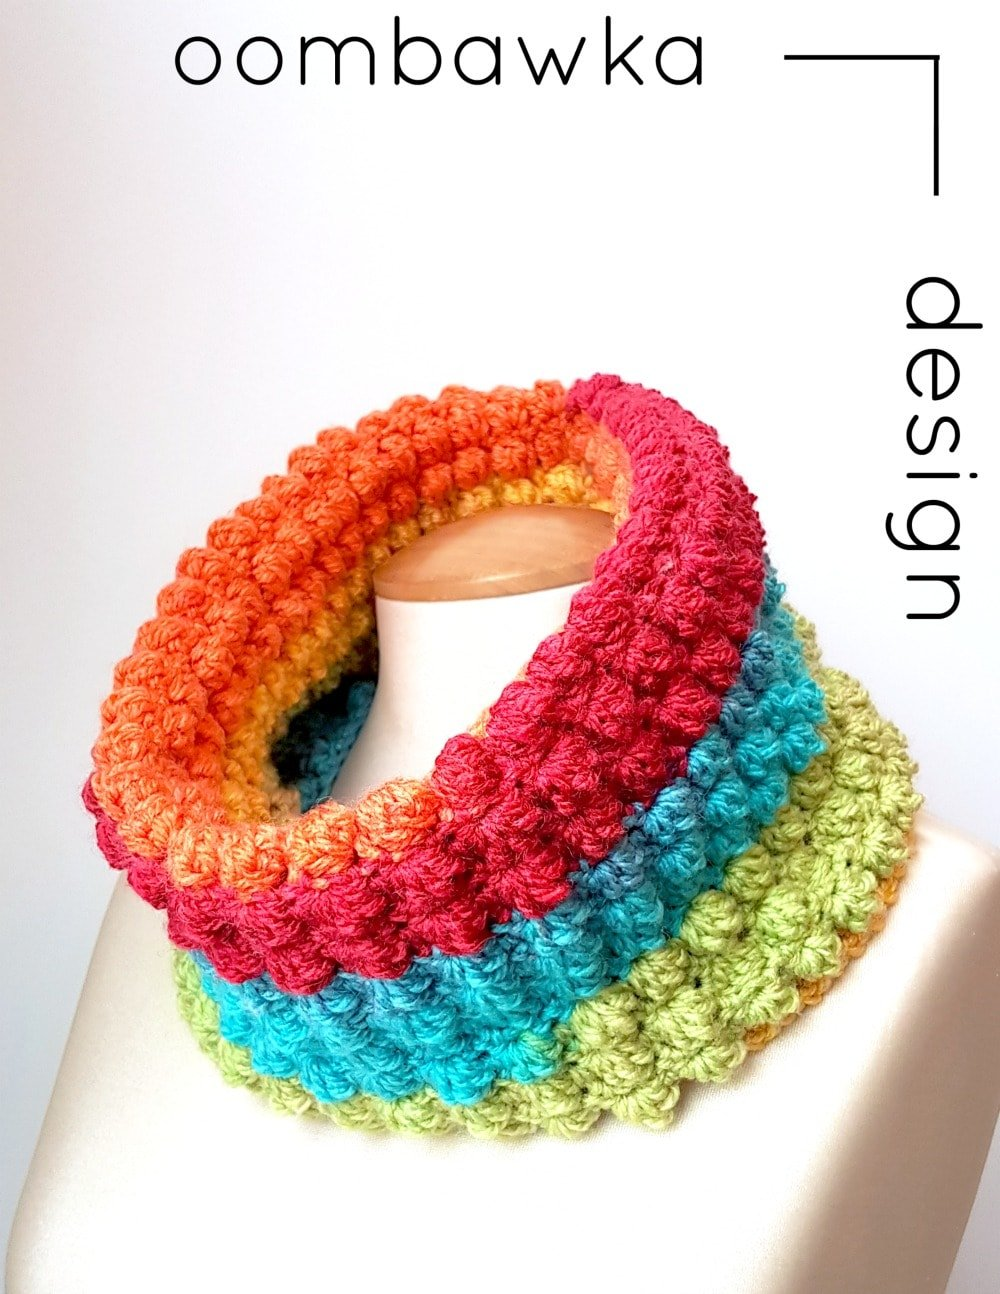 All The Colors Cowl - March - Scarf of the Month Club Free Crochet Pattern - @OombawkaDesign Yarn: 1 Caron Cake; Hook: 6 mm (J) Just one of the #scarfofthemonthclub2017 patterns!